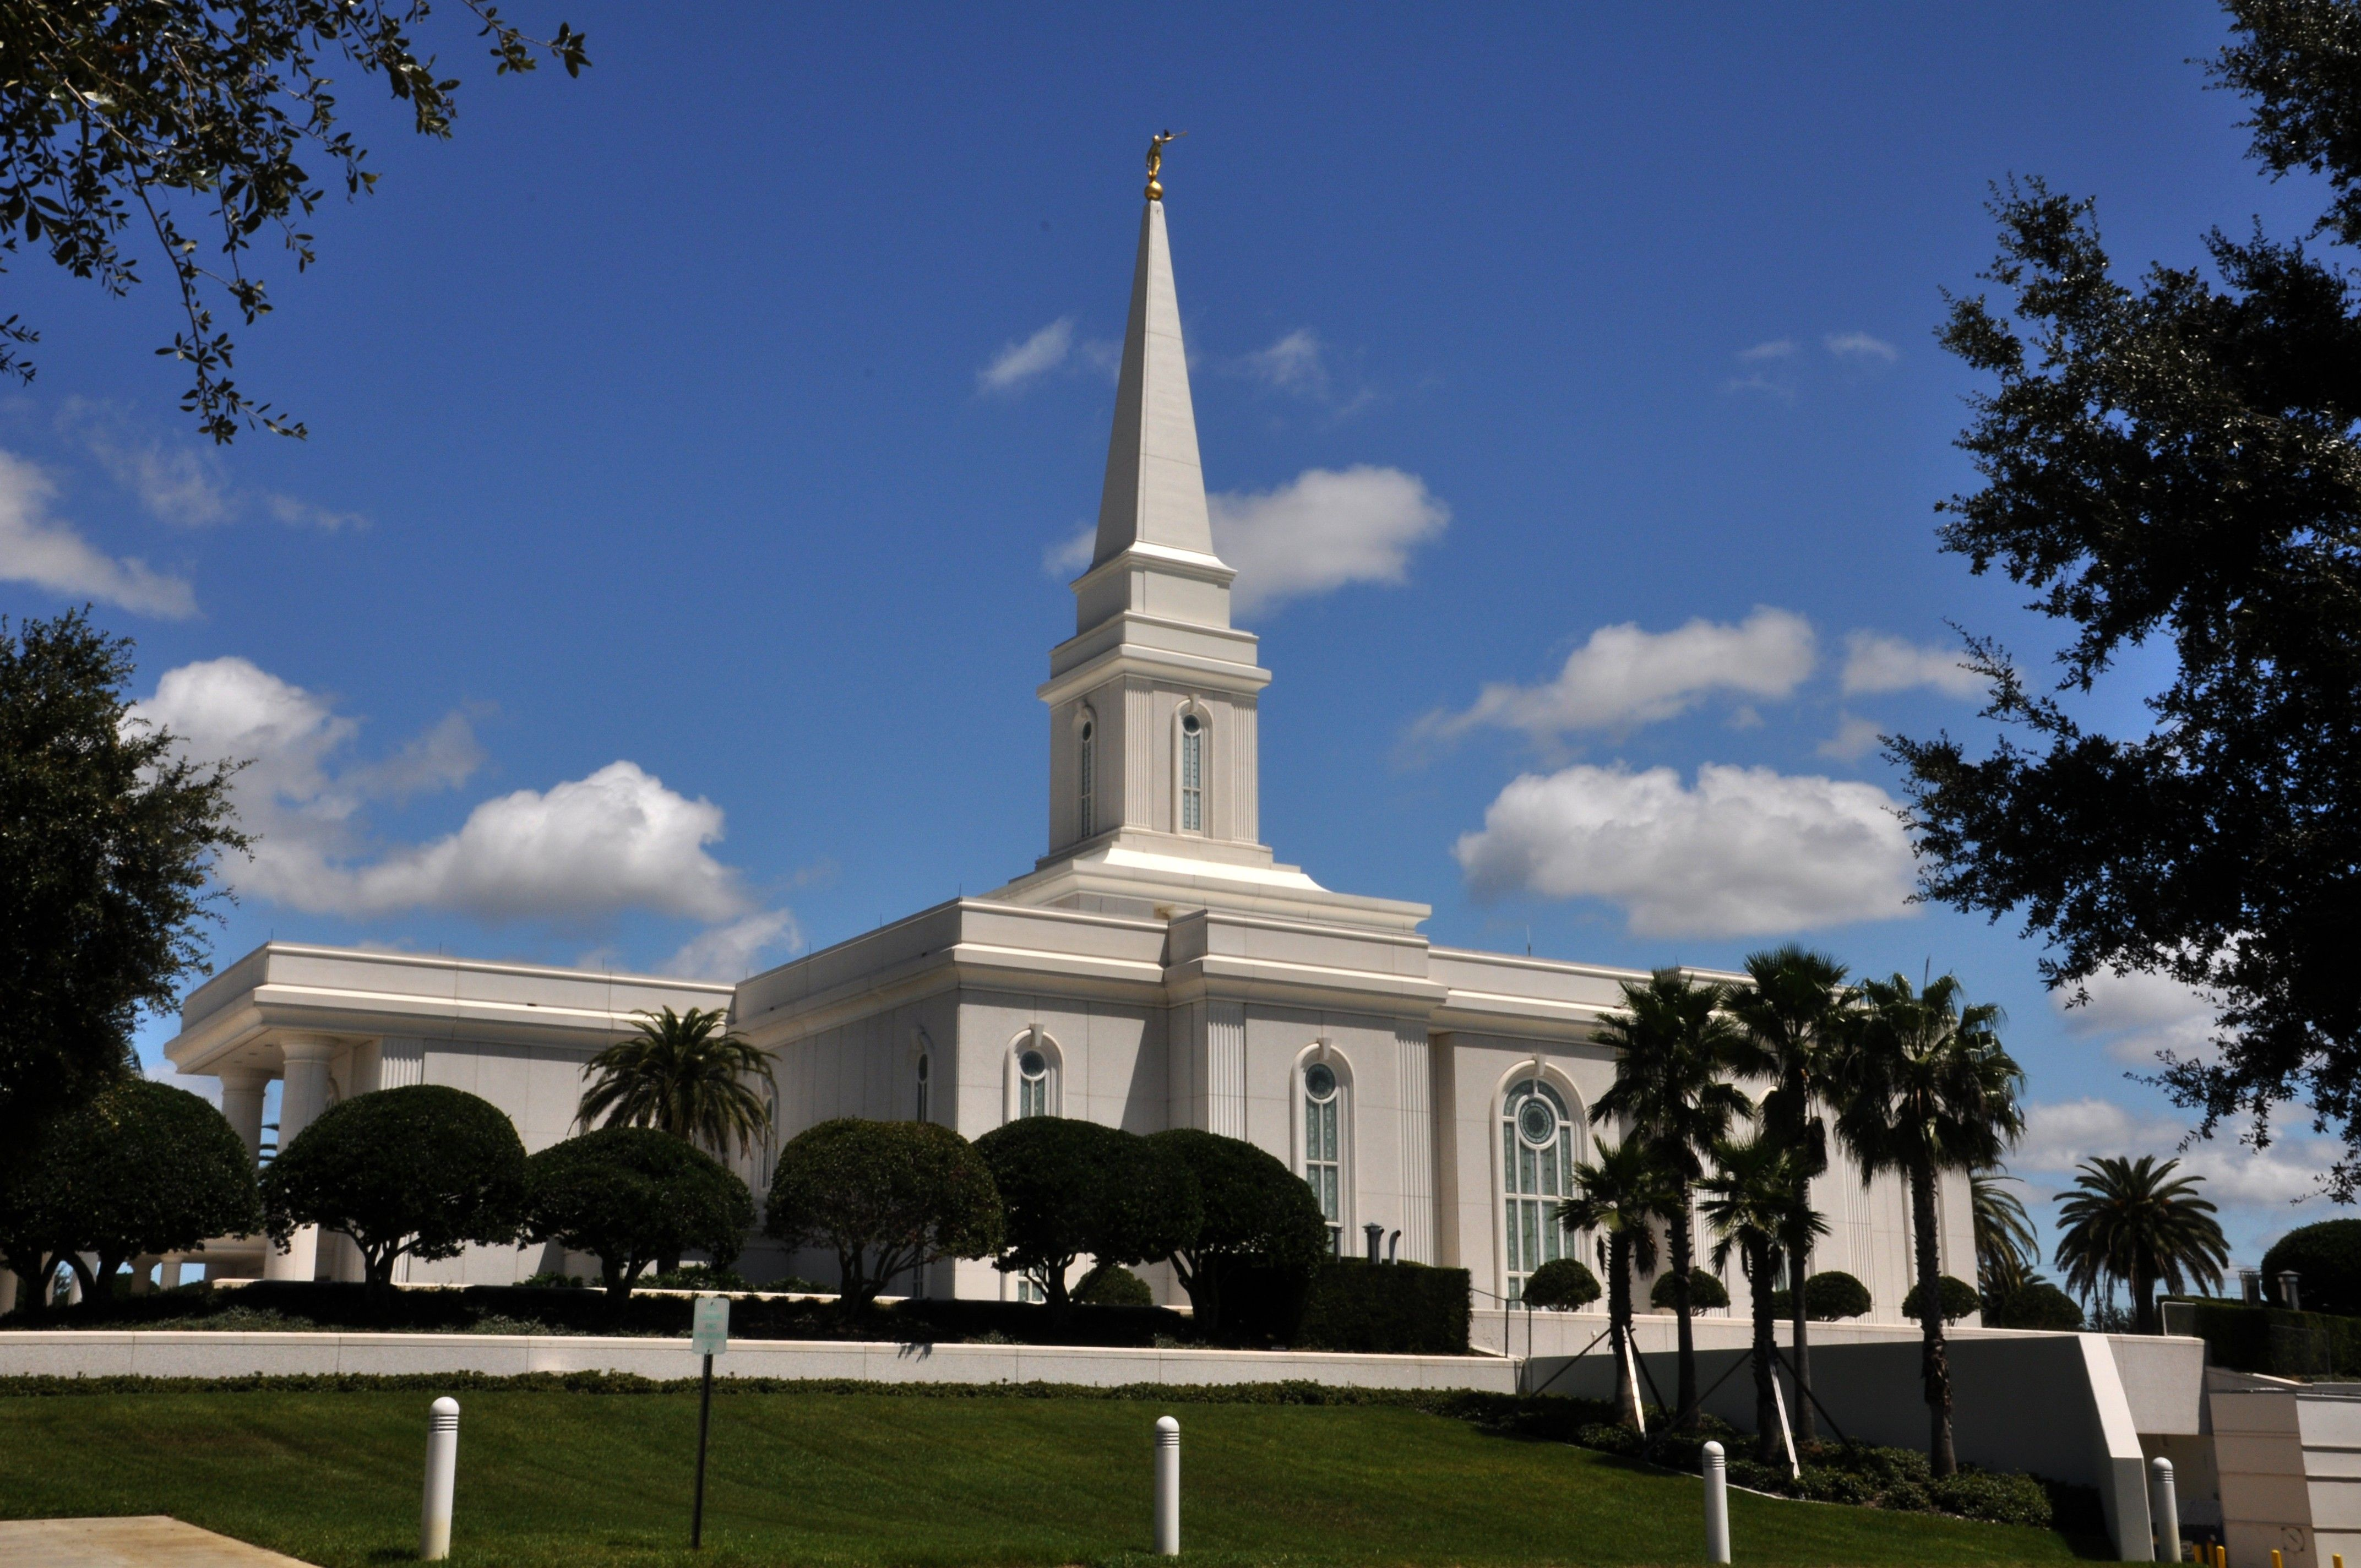 The Orlando Florida Temple and grounds on a sunny day.